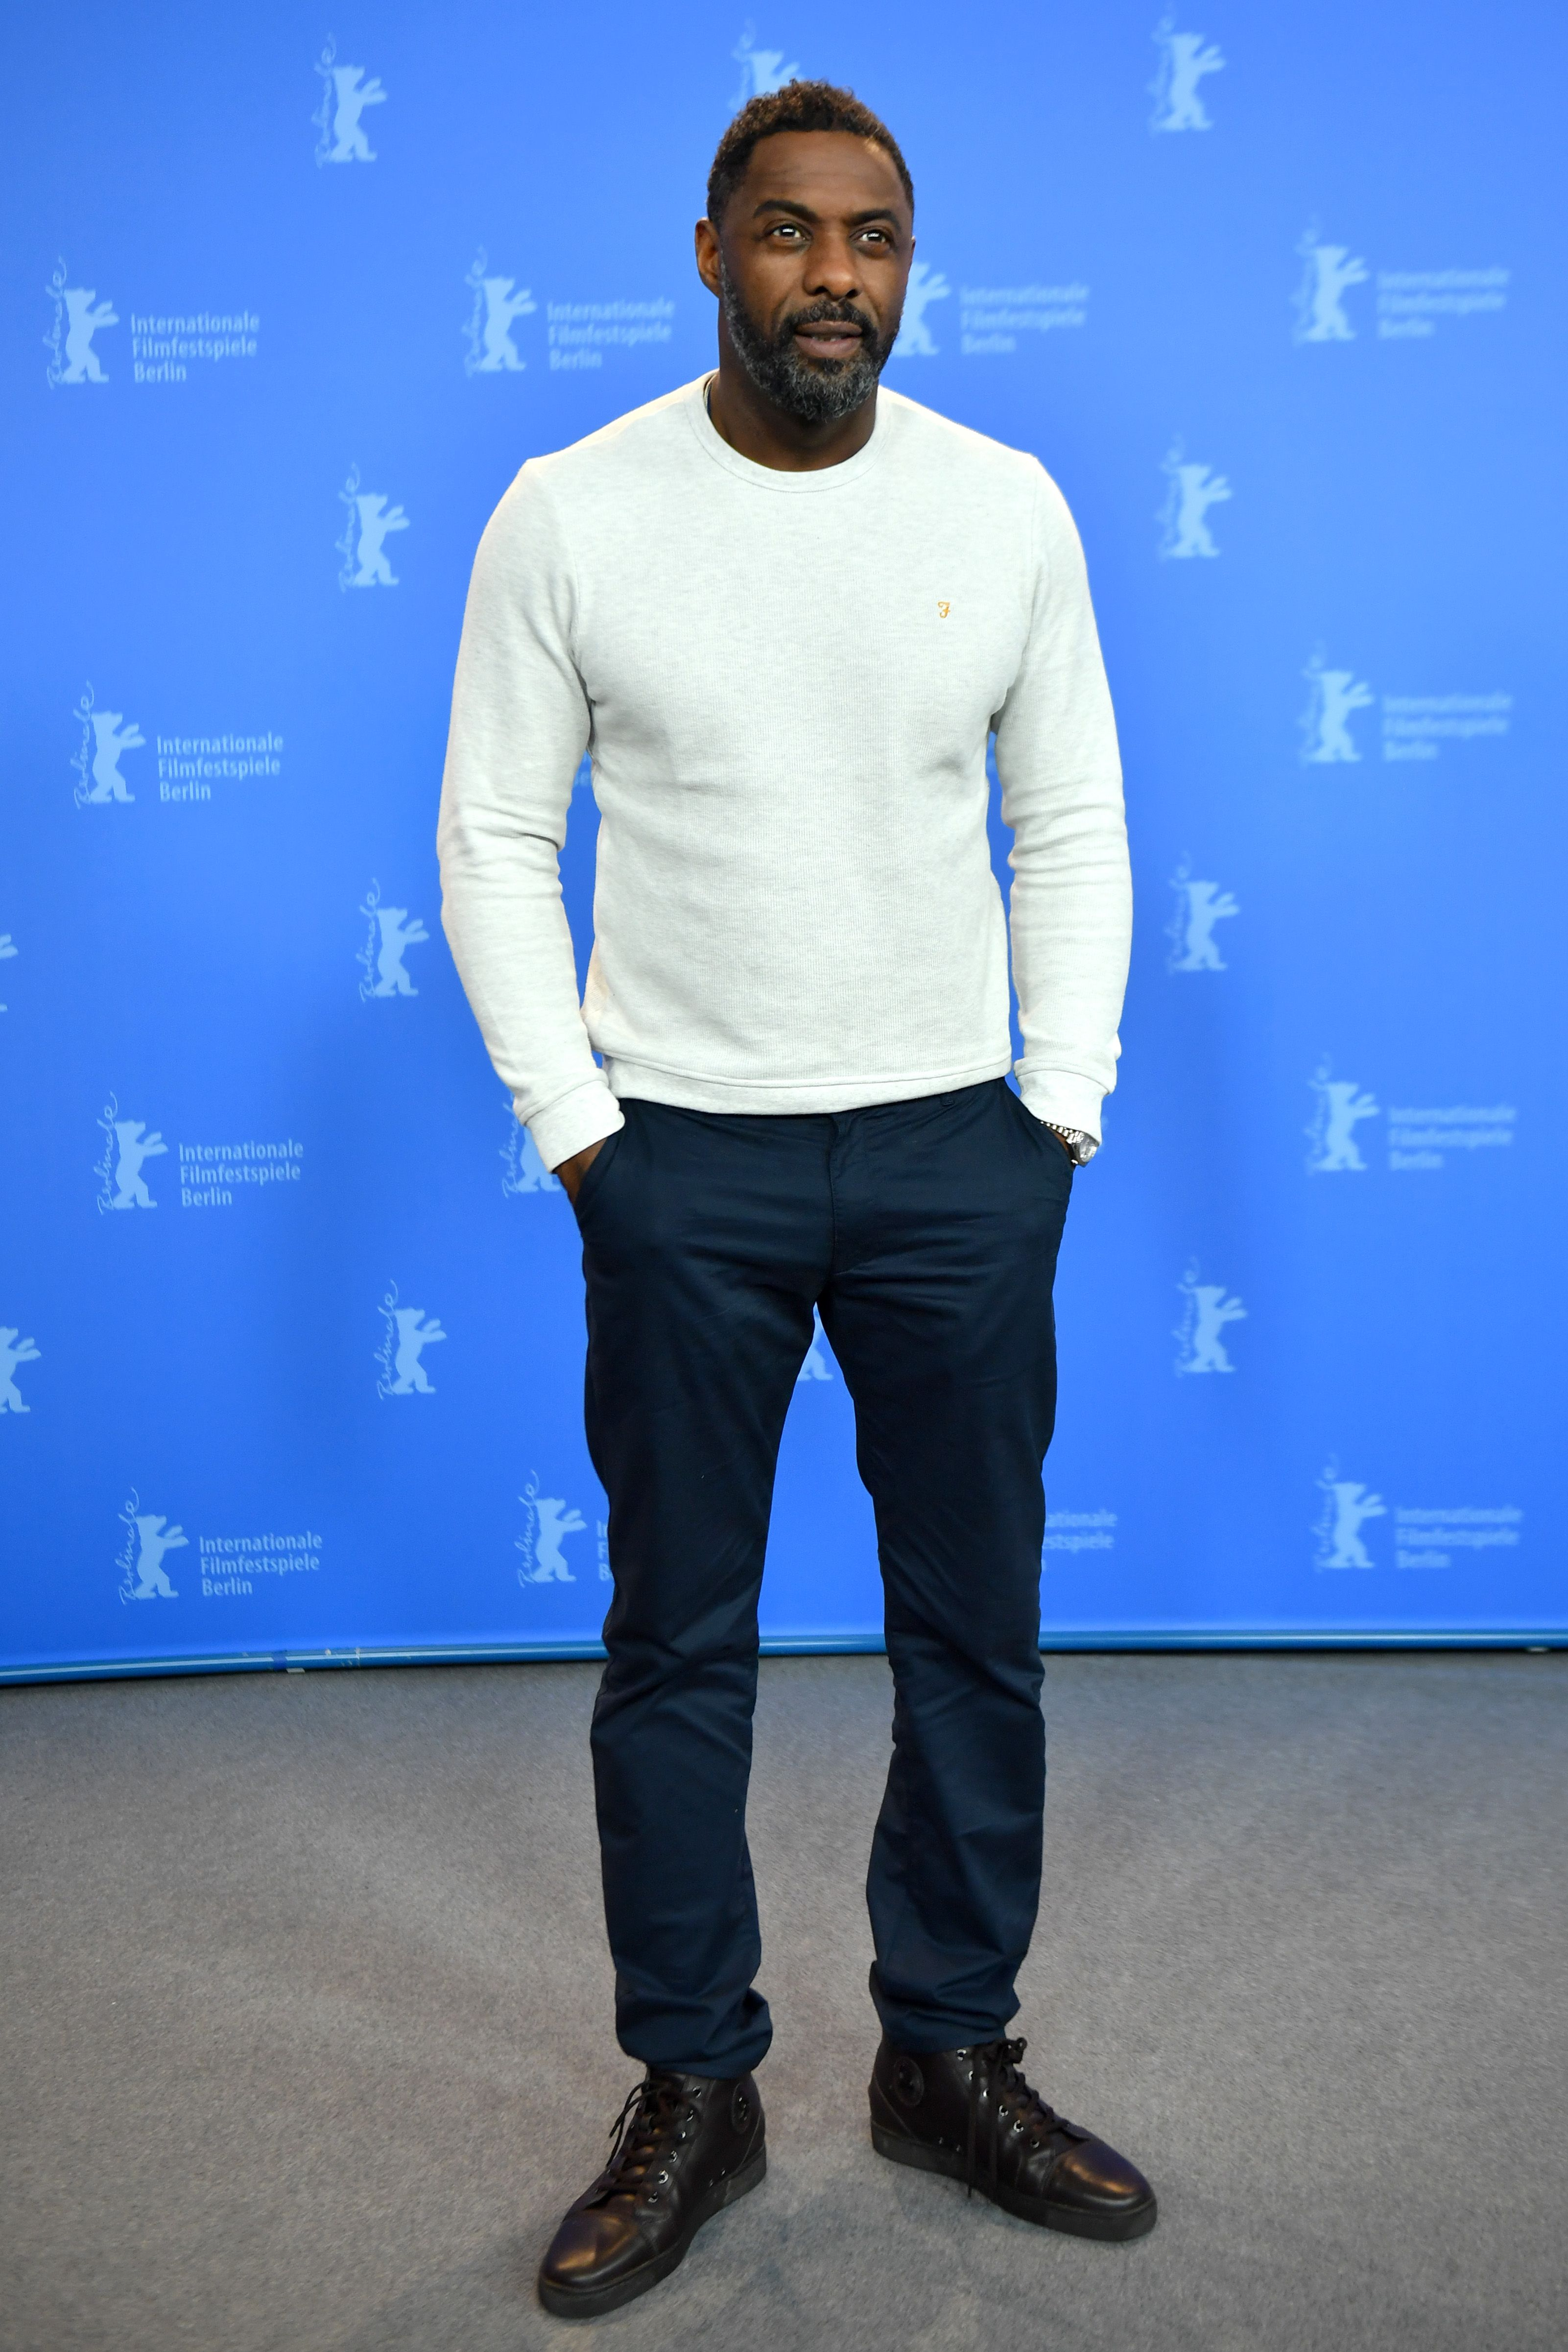 Idris Elba For the non-suit-and-tie office, maintain professionalism with a clean lightweight sweater, chinos, and boots.